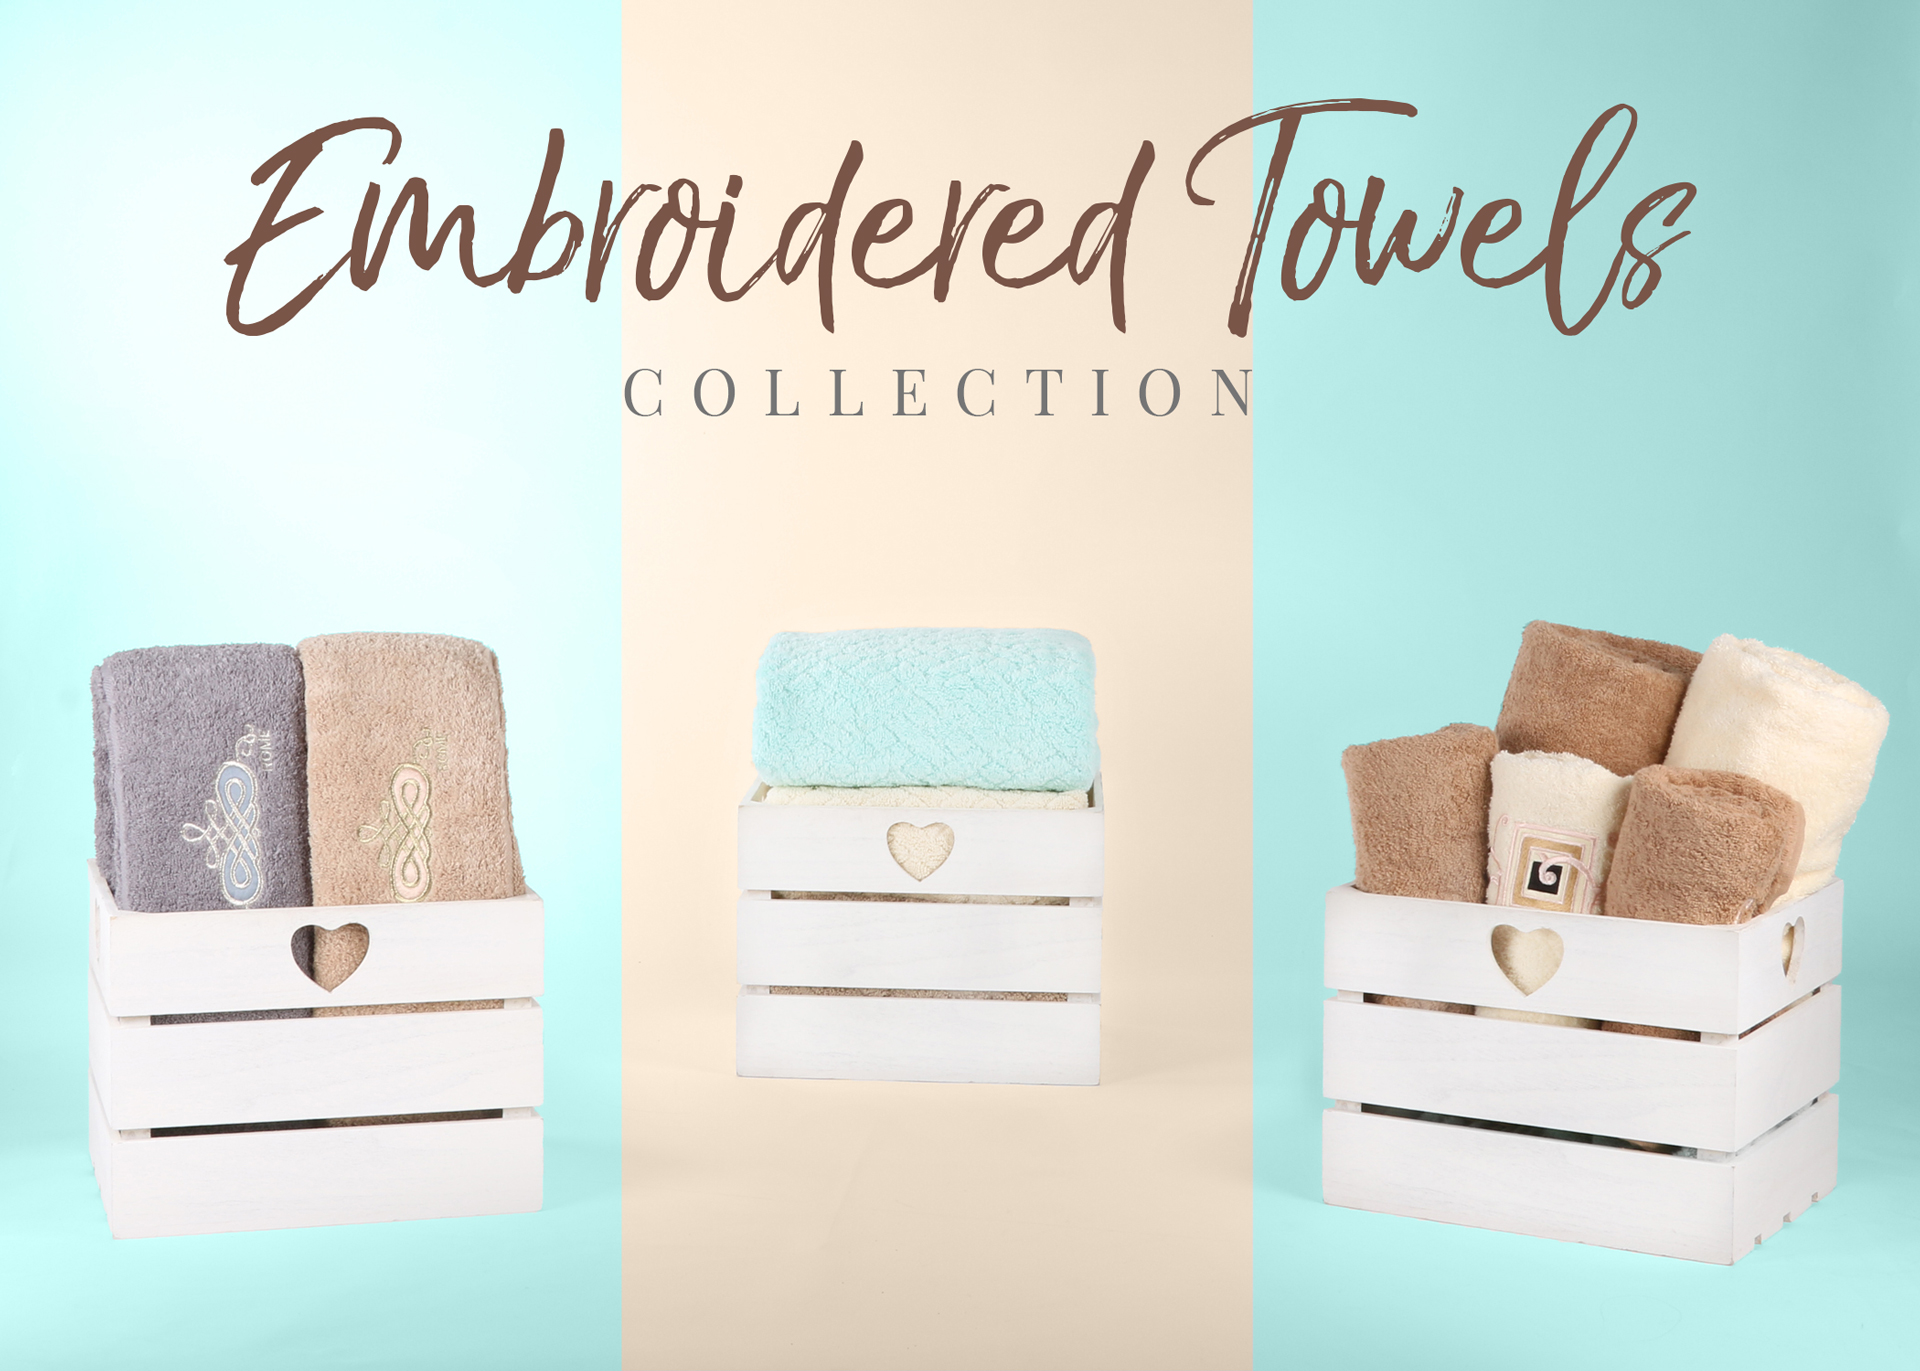 Embroidered Towels Collection